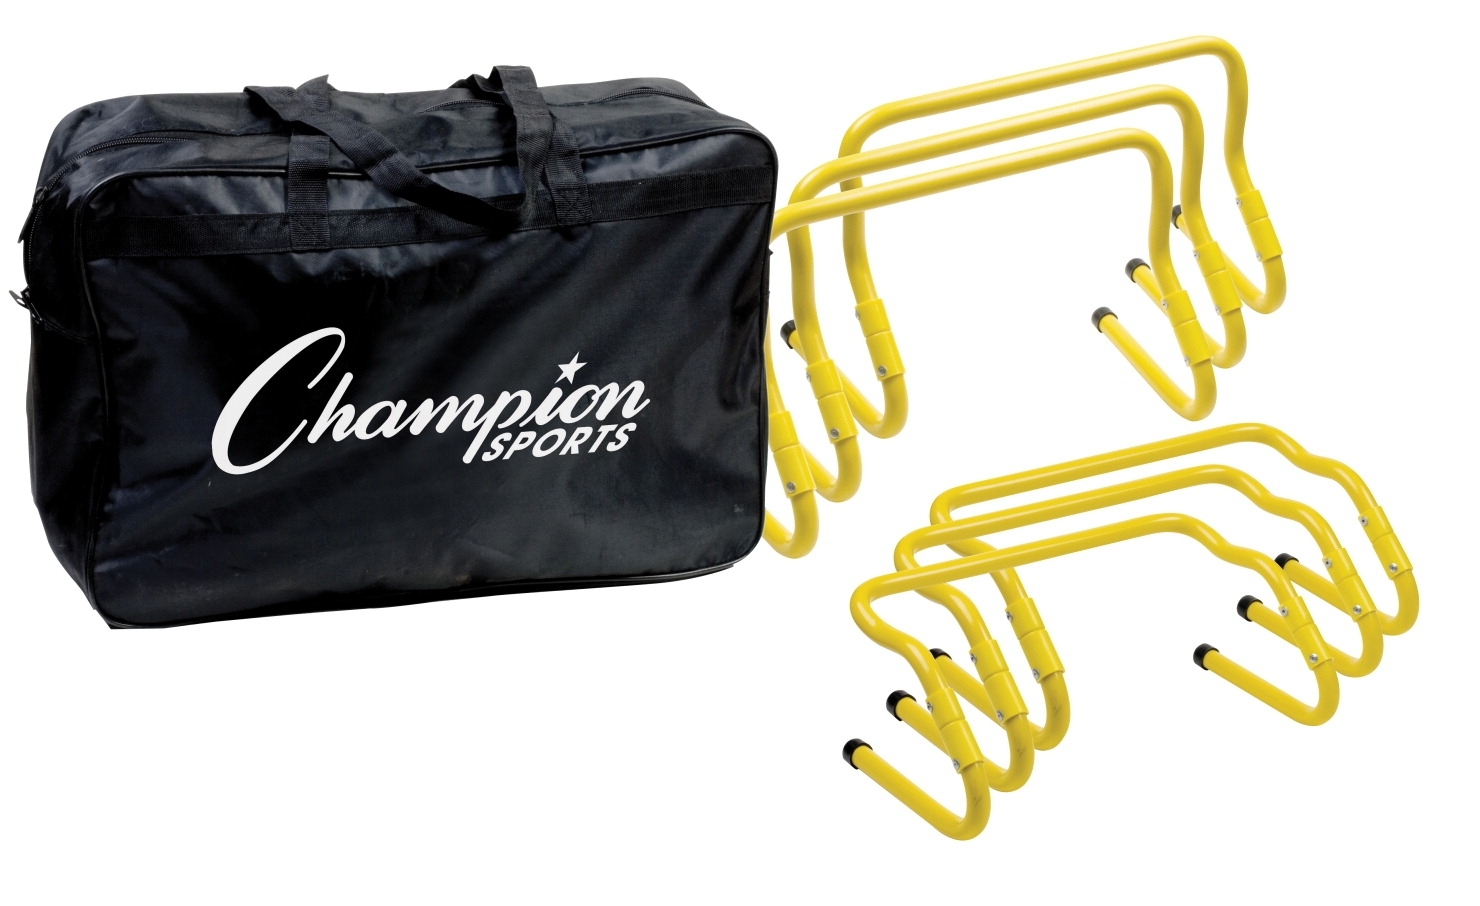 Safety Physical Education & Sport Physical Education Resources Protective Equipment - 1363156 - Champion Adjustable Hurdle Kit With Carrying Bag 1363156